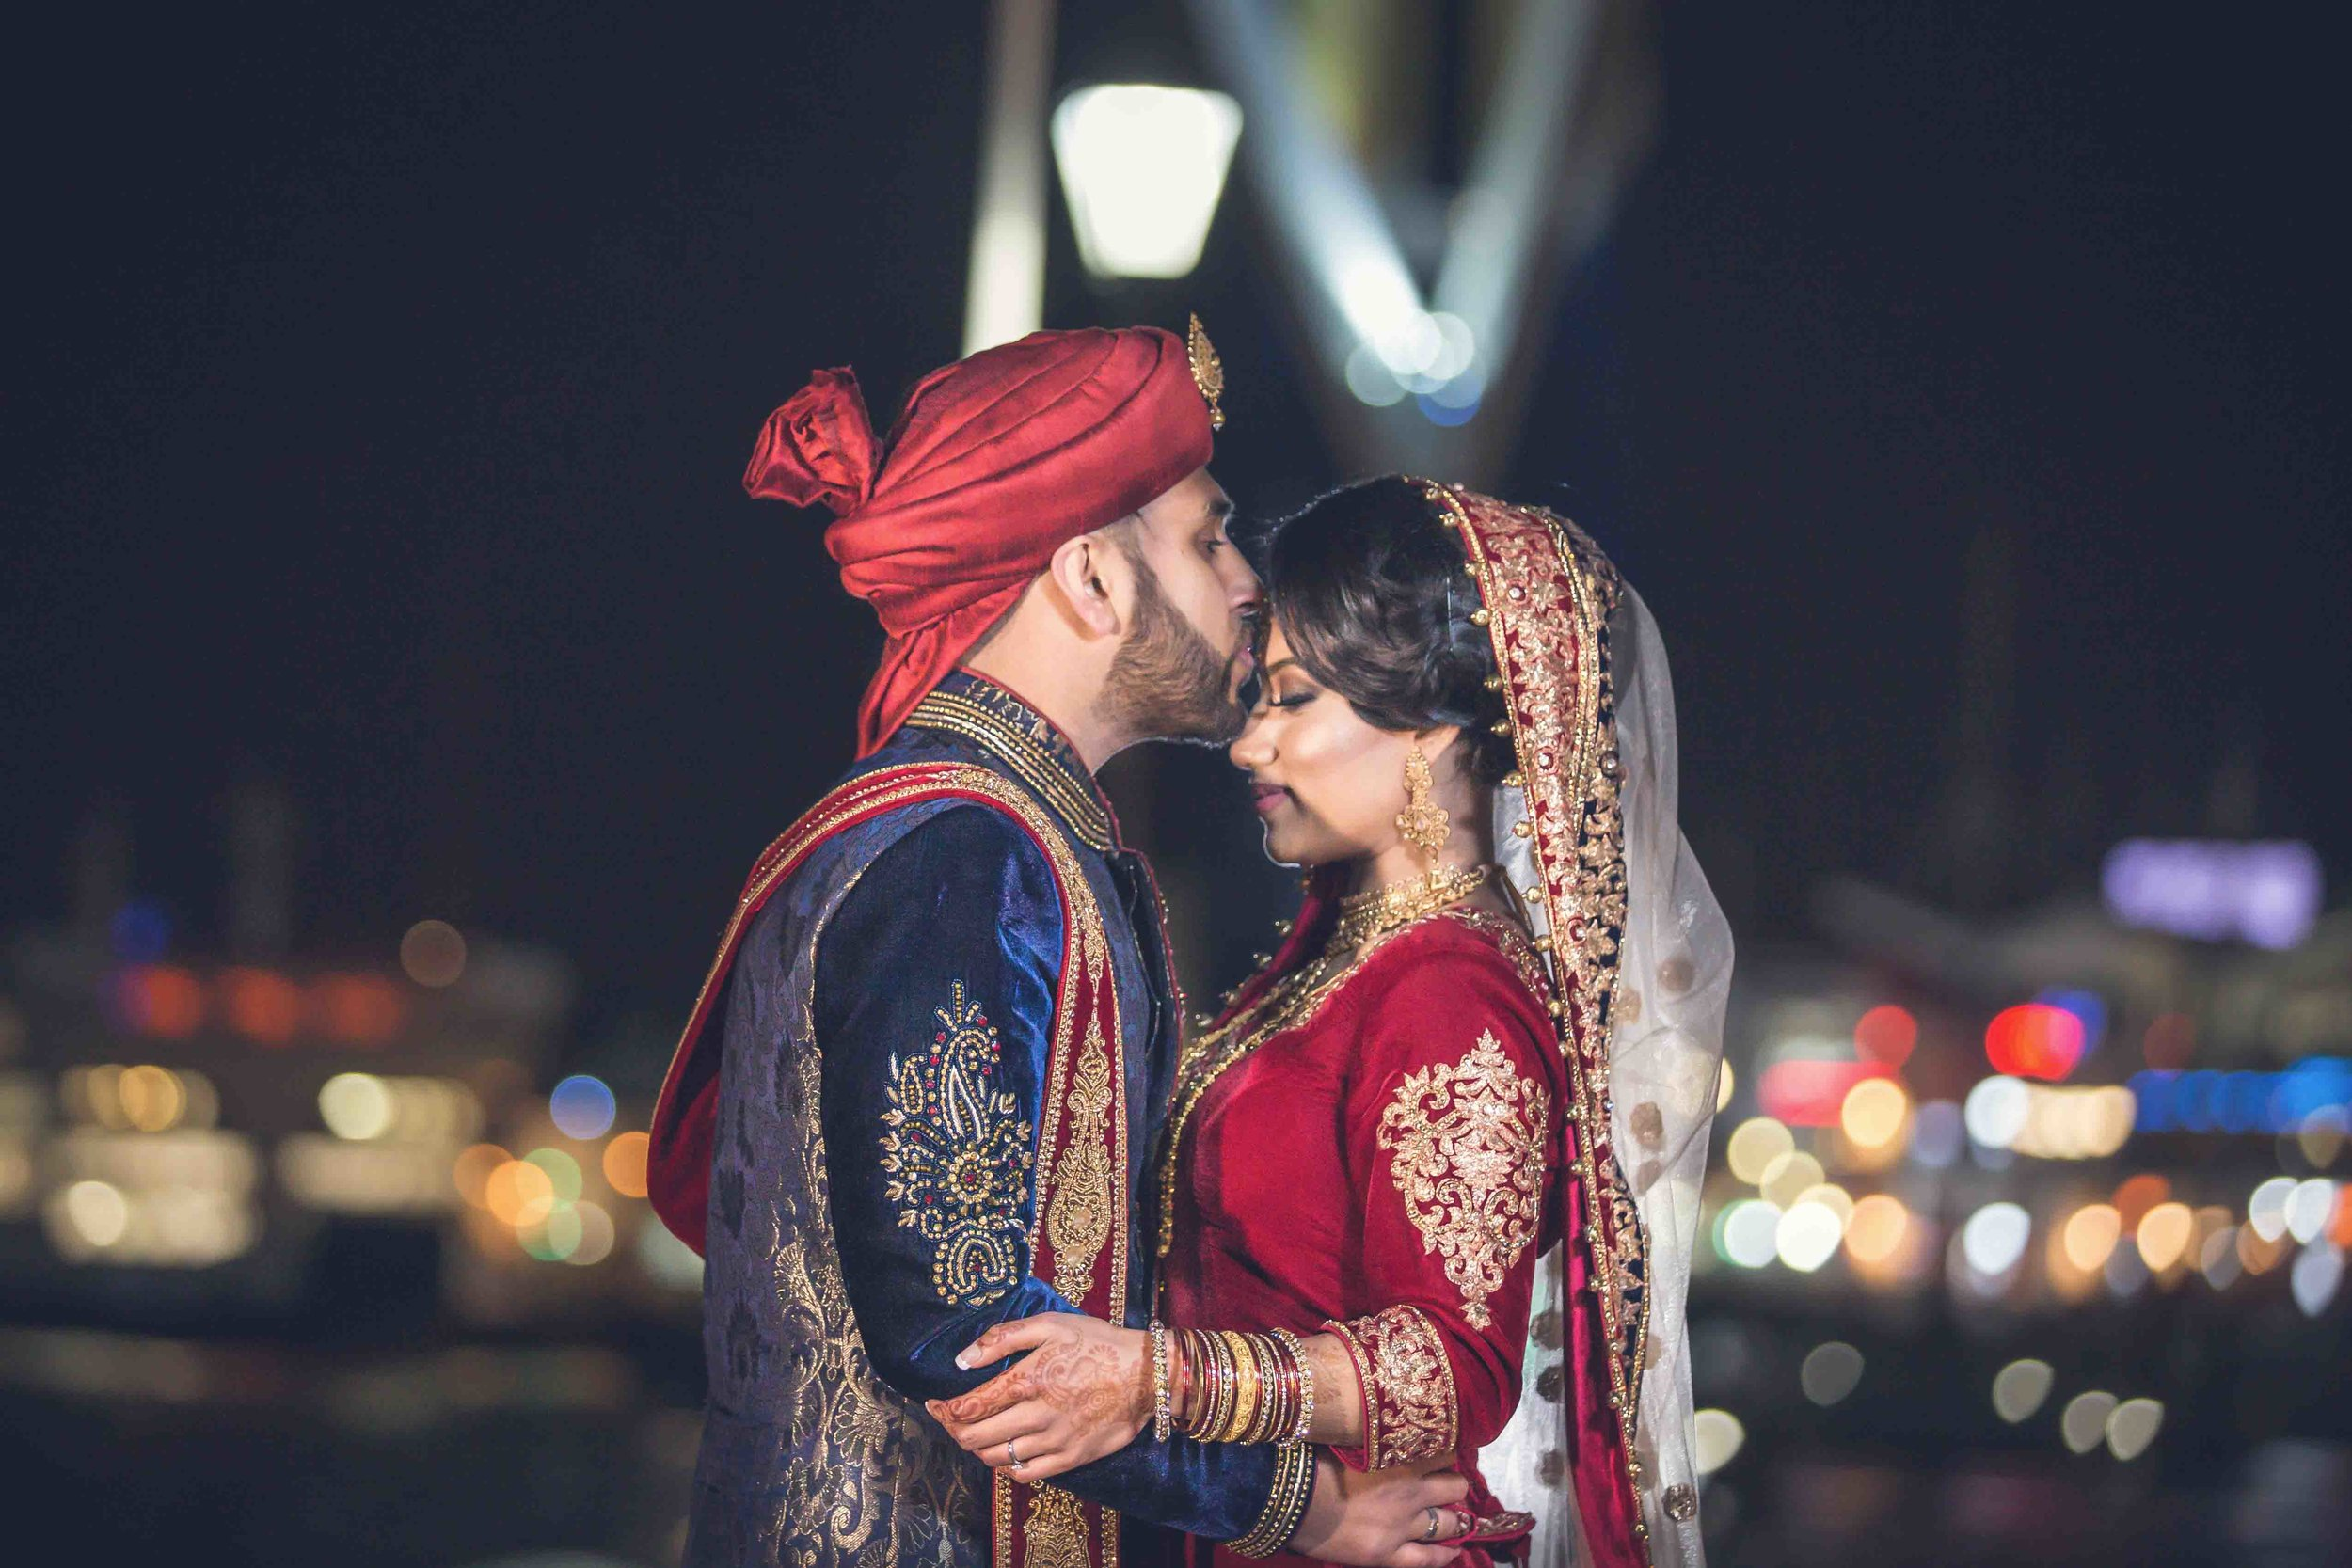 Asian Wedding Photographer Opu Sultan Photography portsmouth Scotland Edinburgh Glasgow London Manchester Liverpool Birmingham Wedding Photos prewed shoot Luko & Rujina Blog-32.jpg